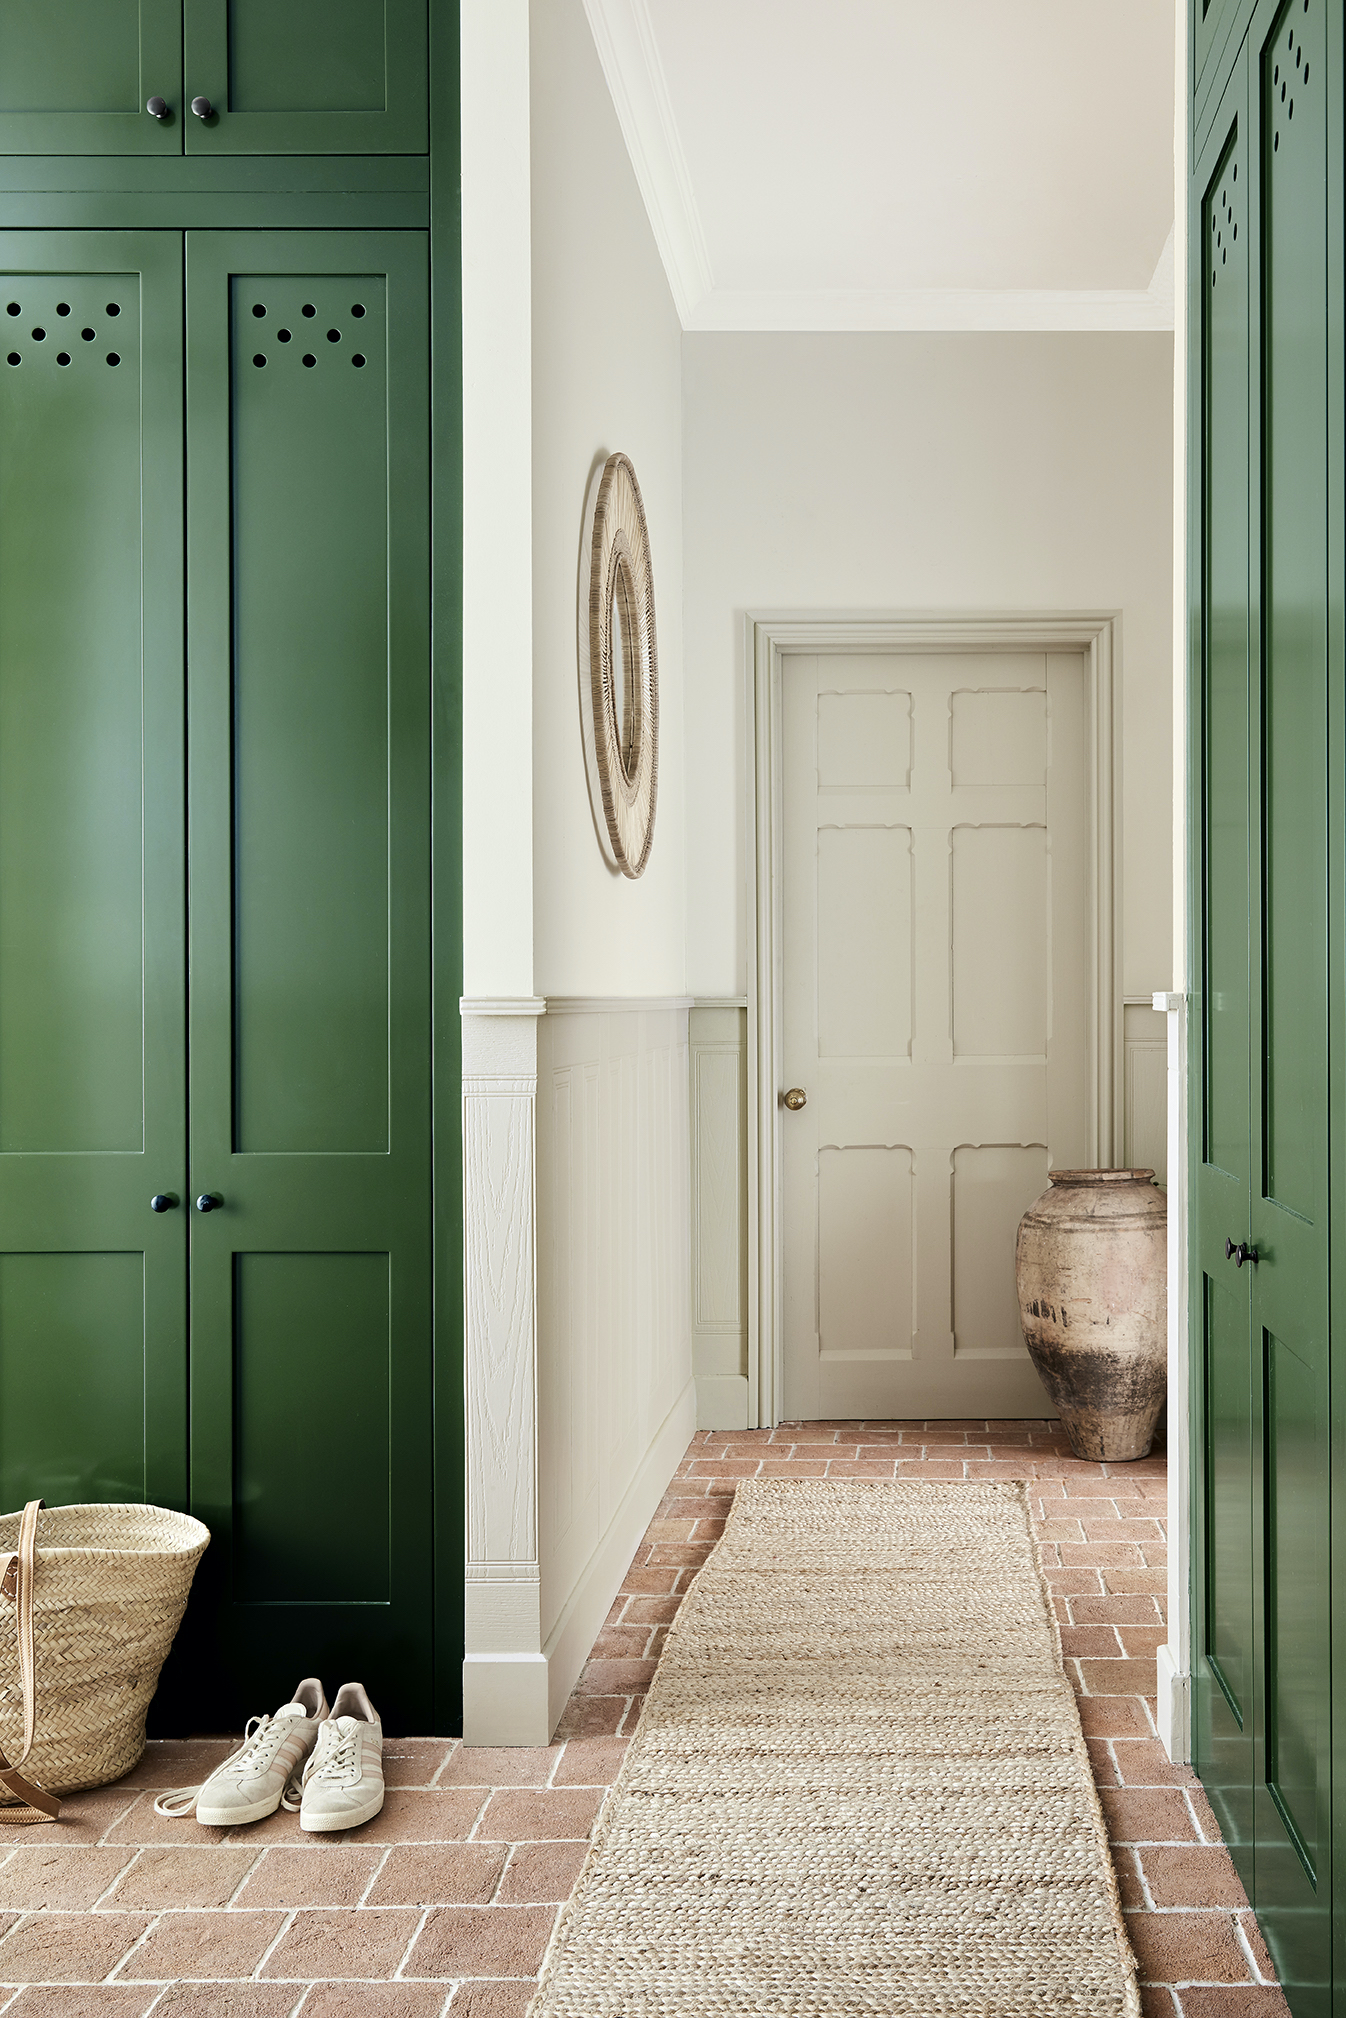 The new stone collection from little greene: brunswick green and portland stone in light and pale